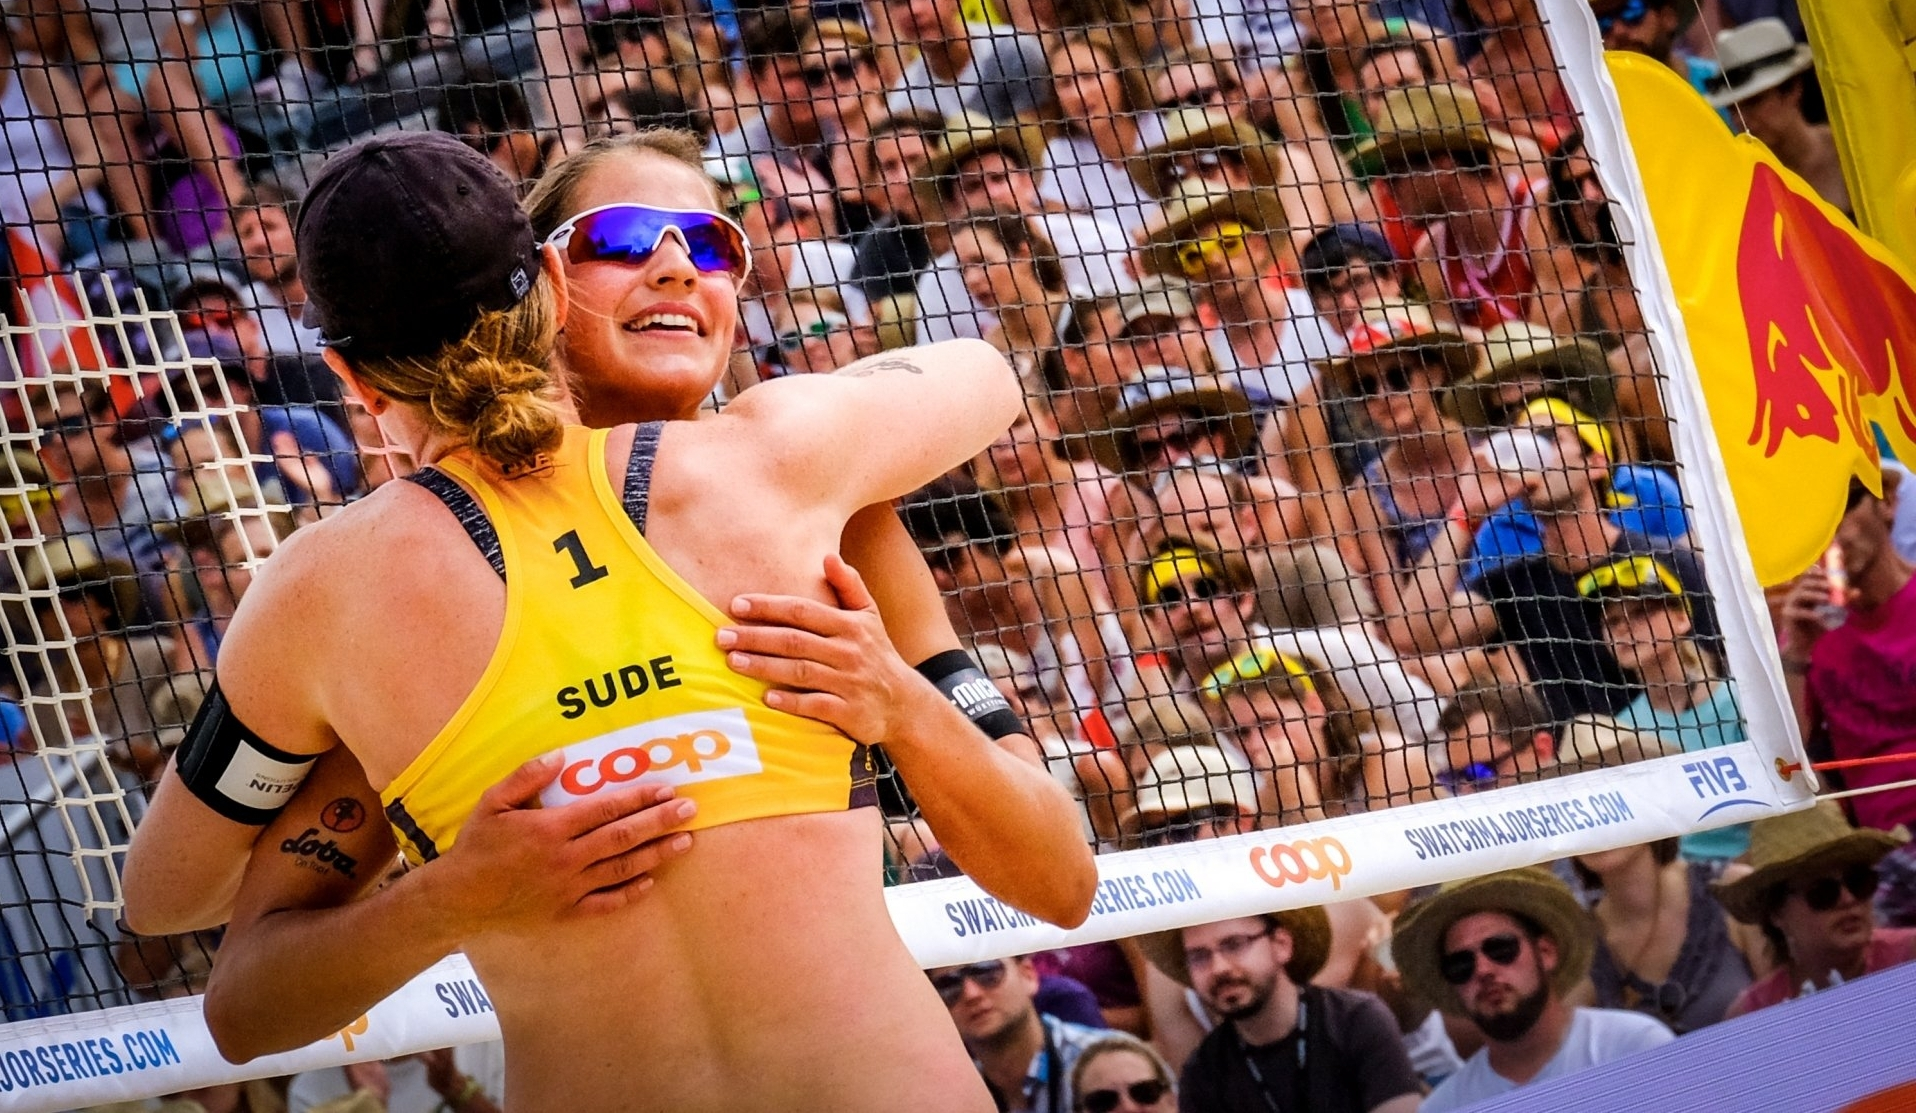 Sude and Laboureur advanced to the elimination round in Gstaad